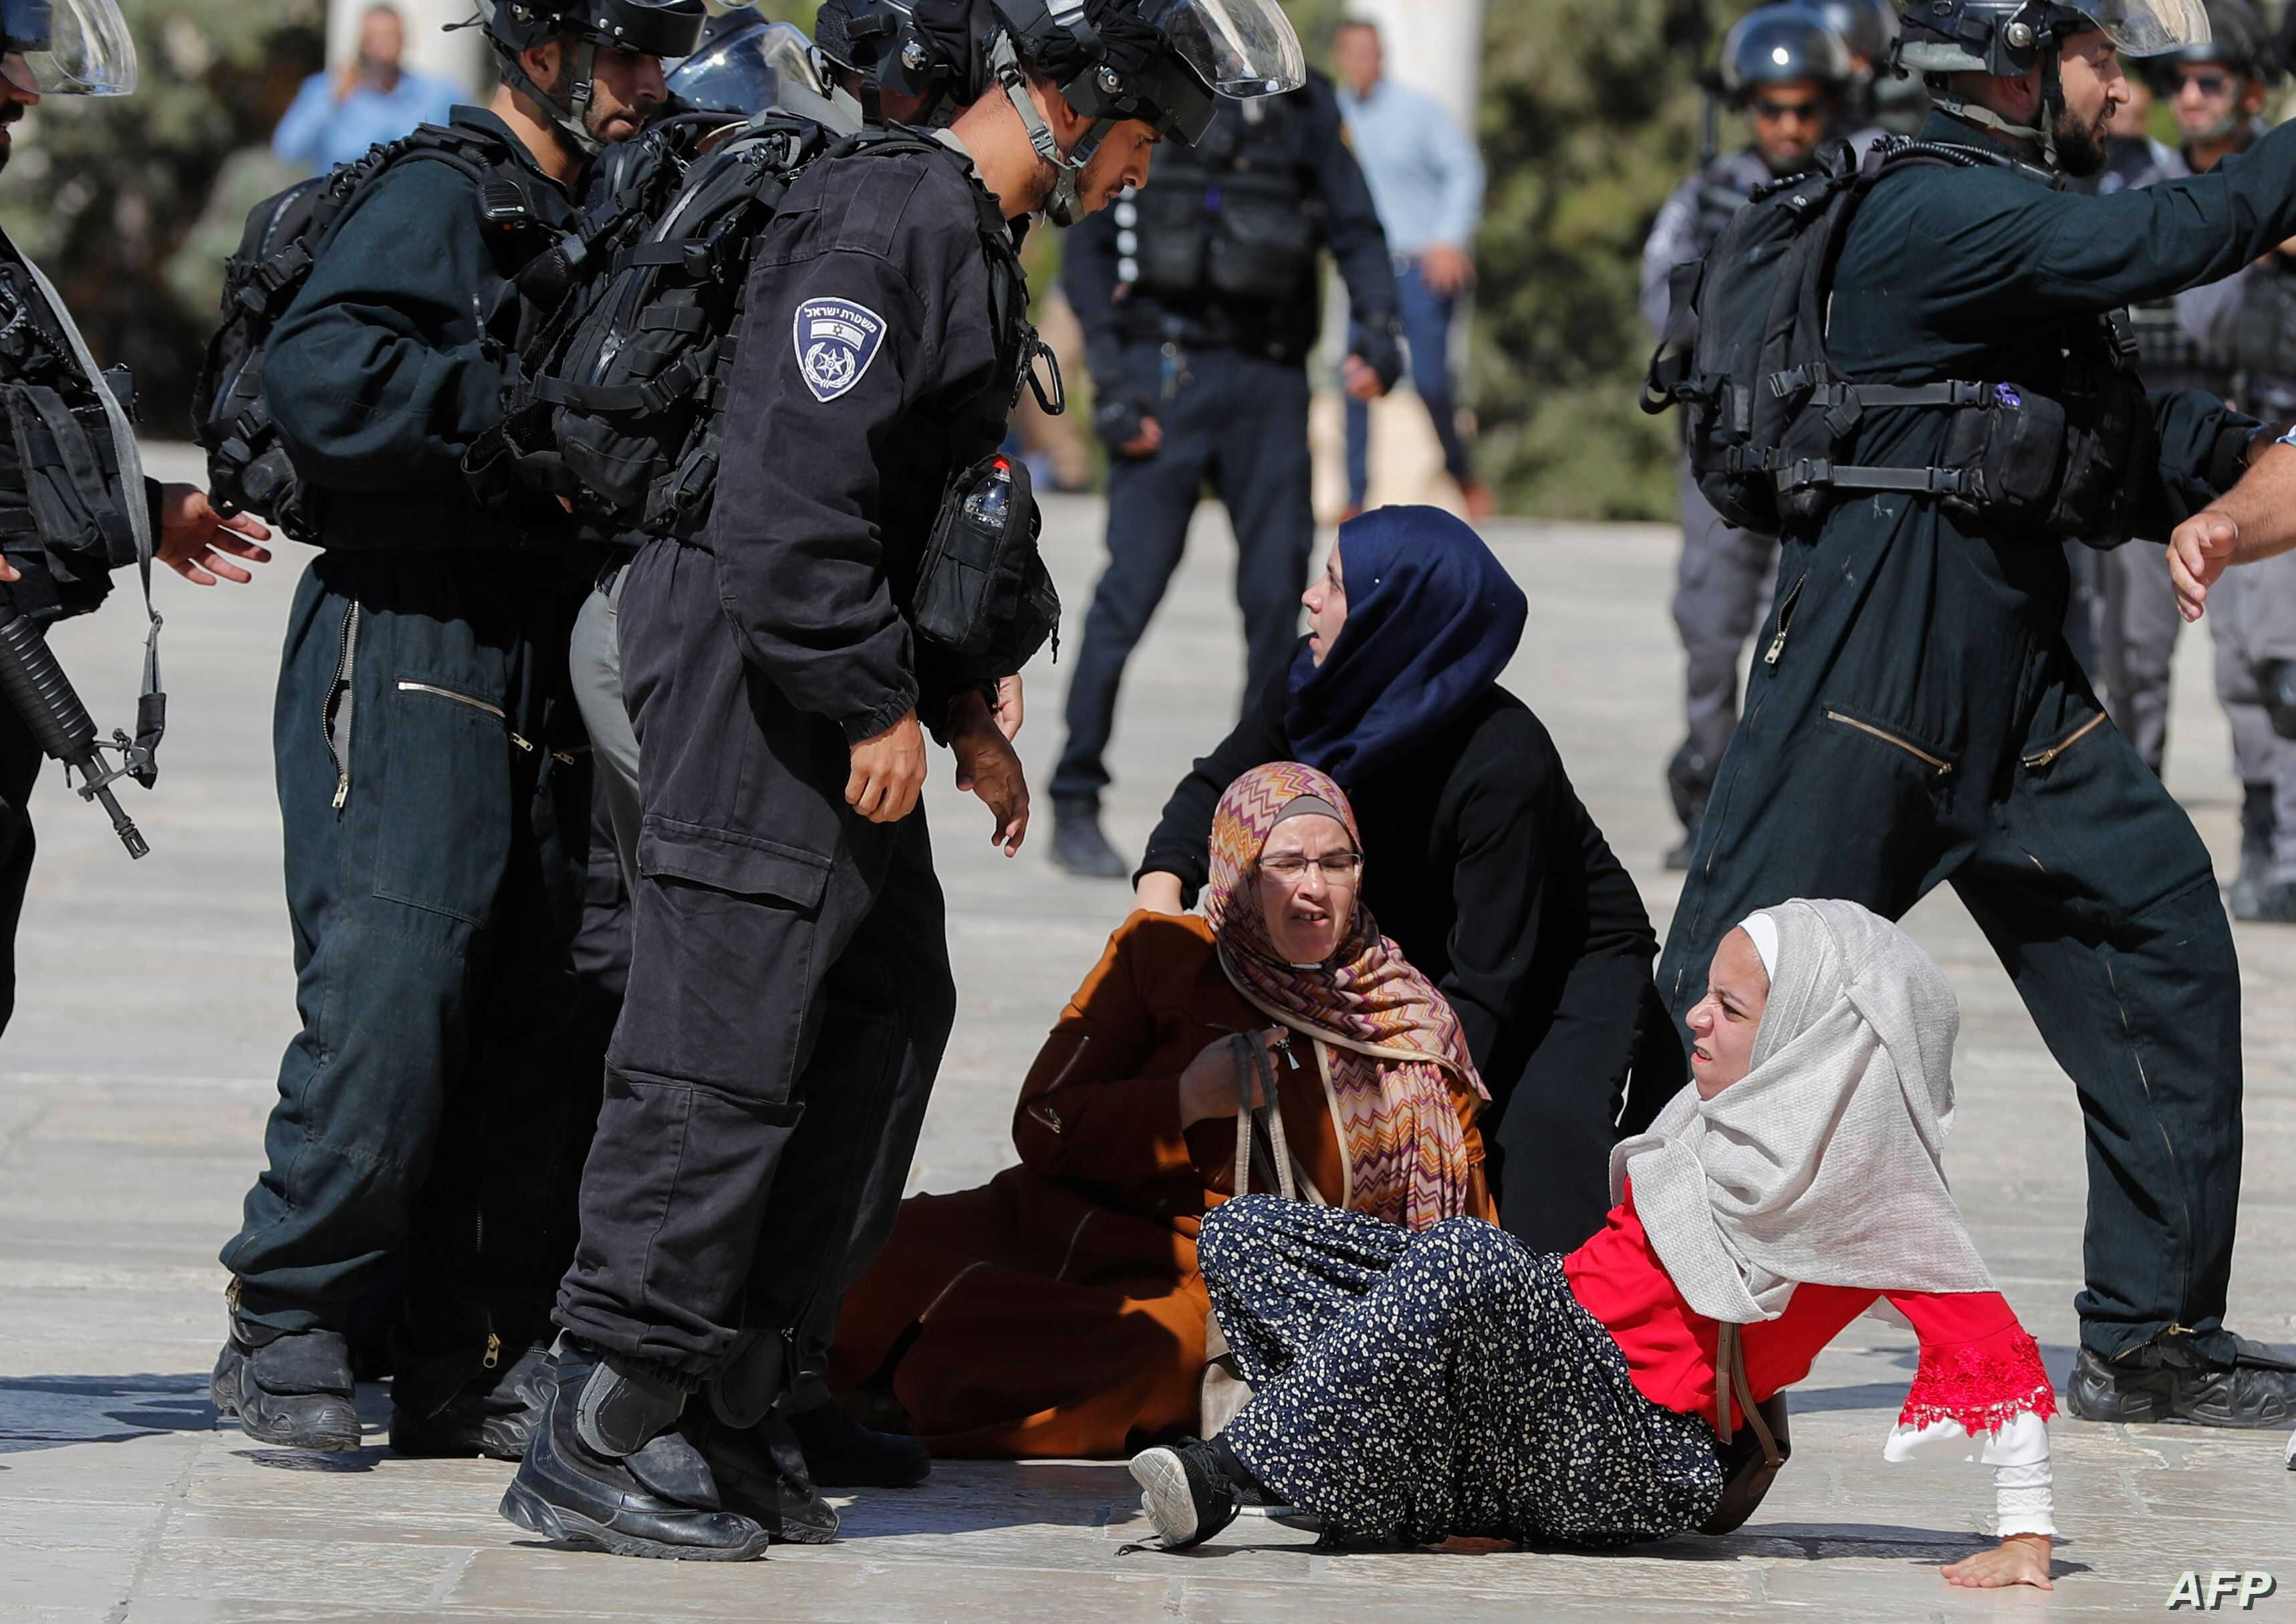 TOPSHOT - Israeli security forces scuffle with Palestinians at the al-Aqsa Mosque compound in the Old City of Jerusalem on August 11, 2019, as clashes broke out during the overlapping Jewish and Muslim holidays of Eid al-Adha and the Tisha B'av…